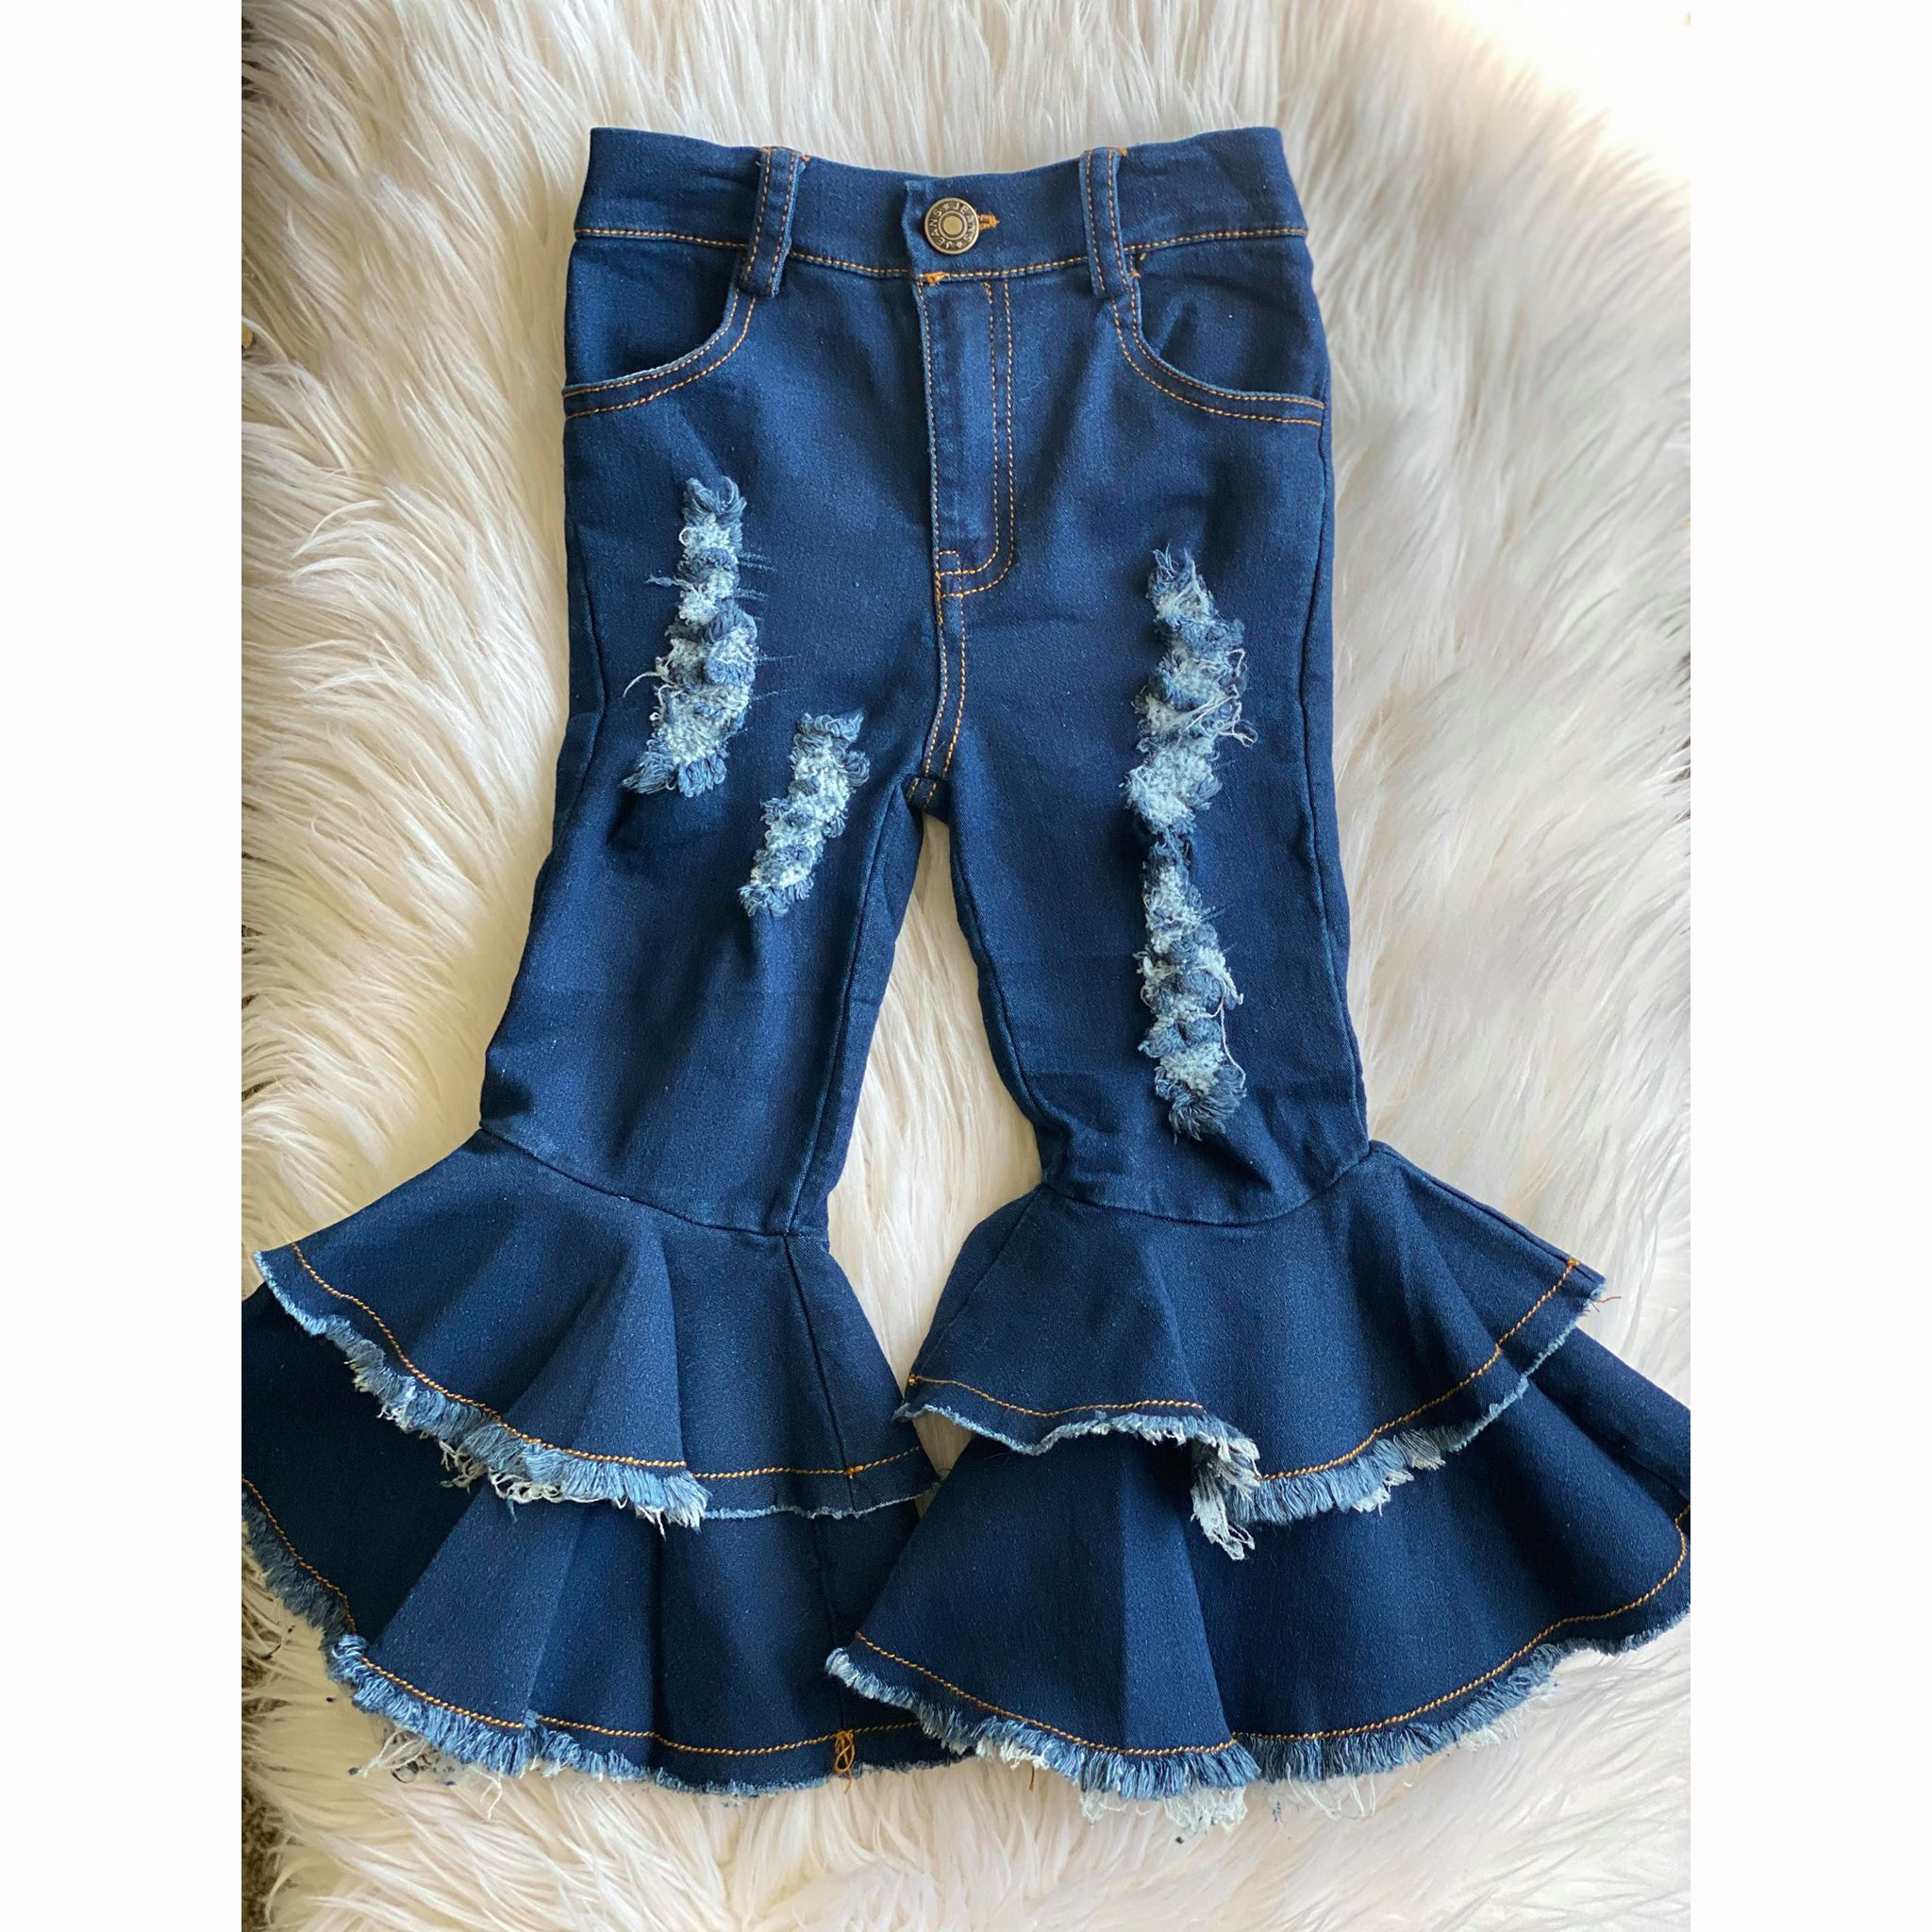 Baby <strong>girls</strong> fall long pants <strong>kids</strong> <strong>fashion</strong> two ruffle denim fabric material No moq children boutique matching cute wholesale pants